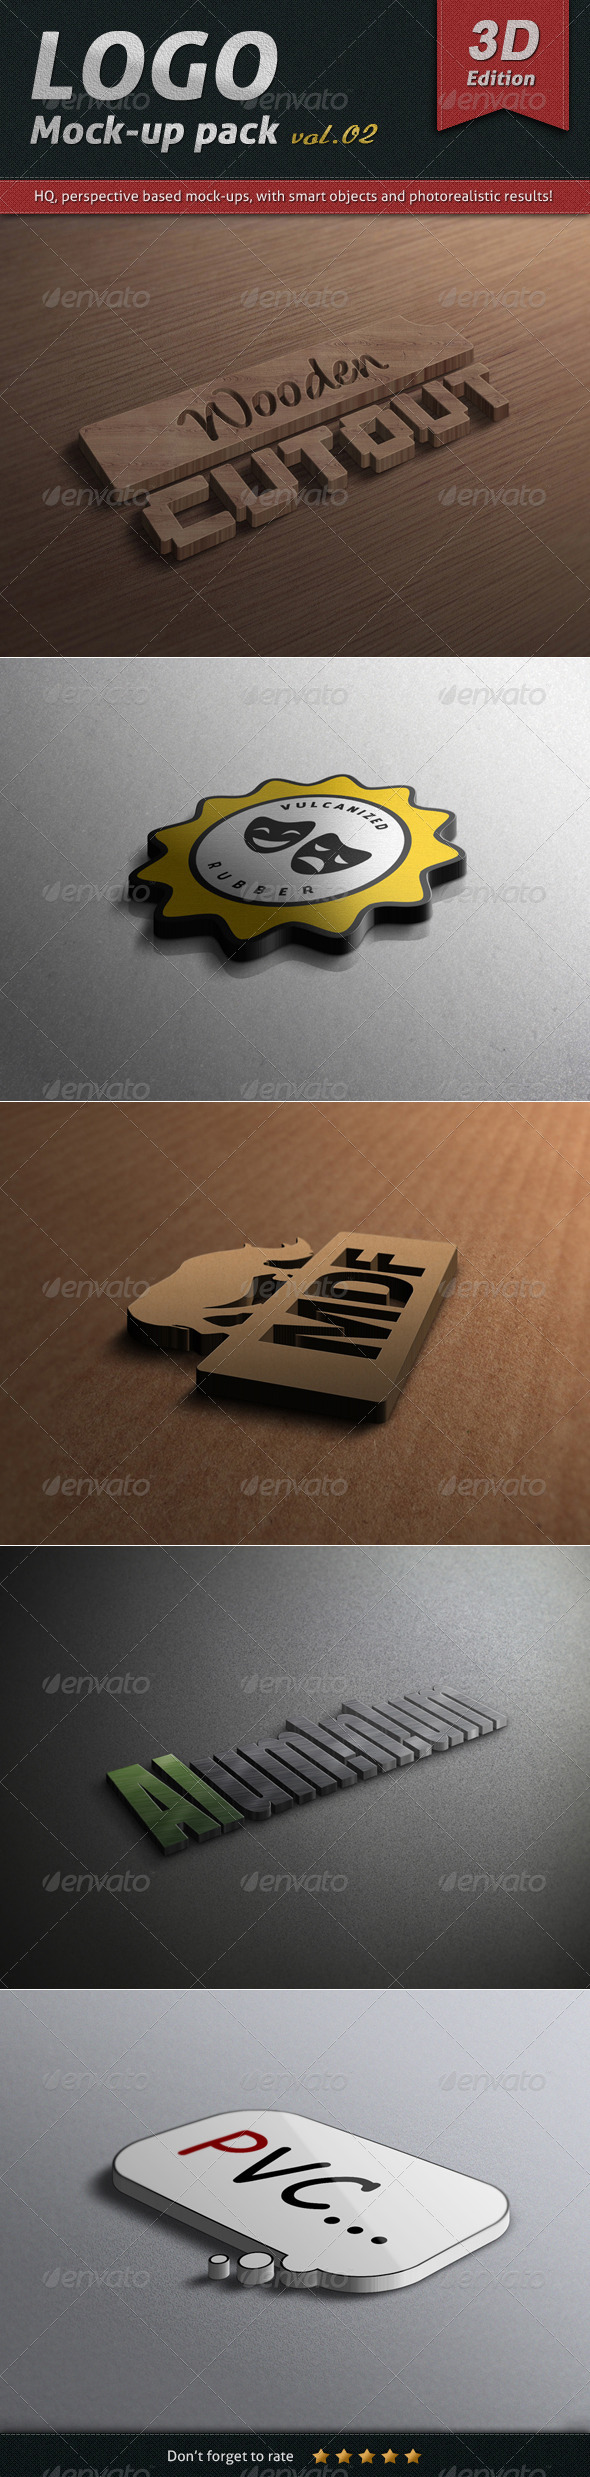 GraphicRiver Logo Mock-up Pack Vol.02 3D Edition 4792617